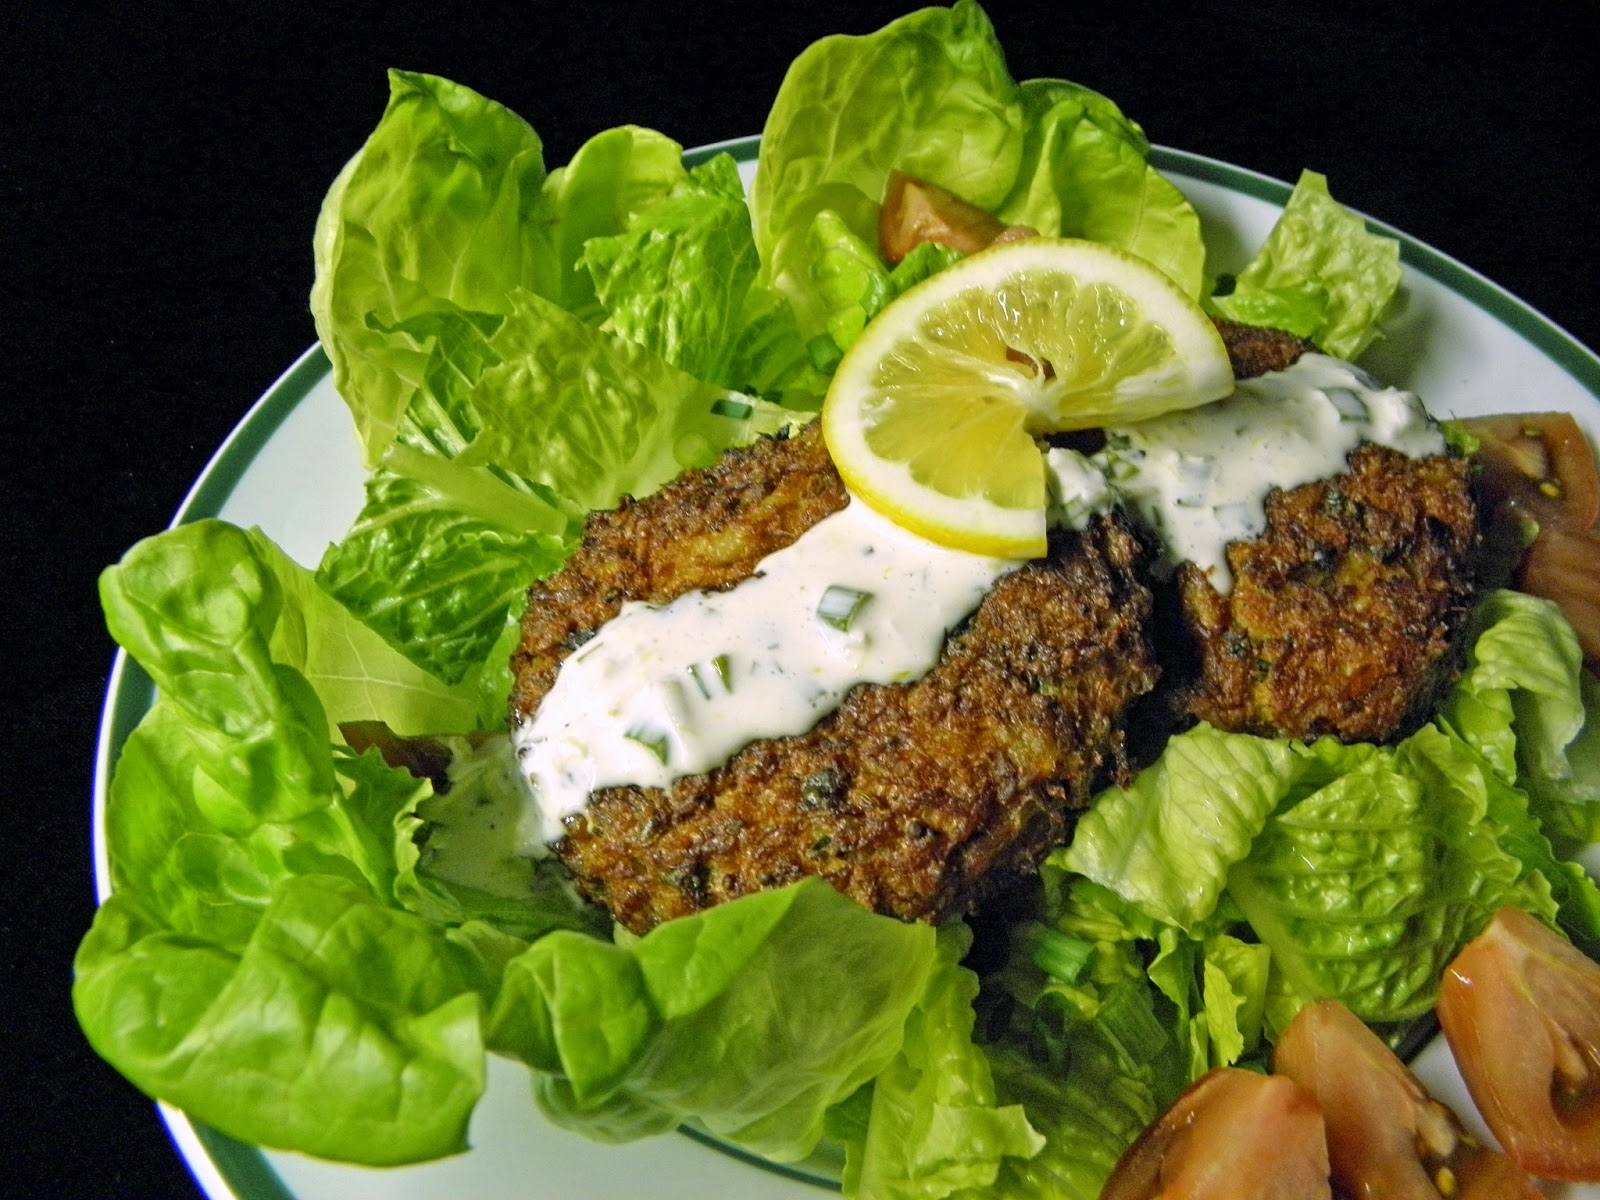 ... and Anita : Oven Baked Crab Cakes With Lemon Aioli Served Over Salad